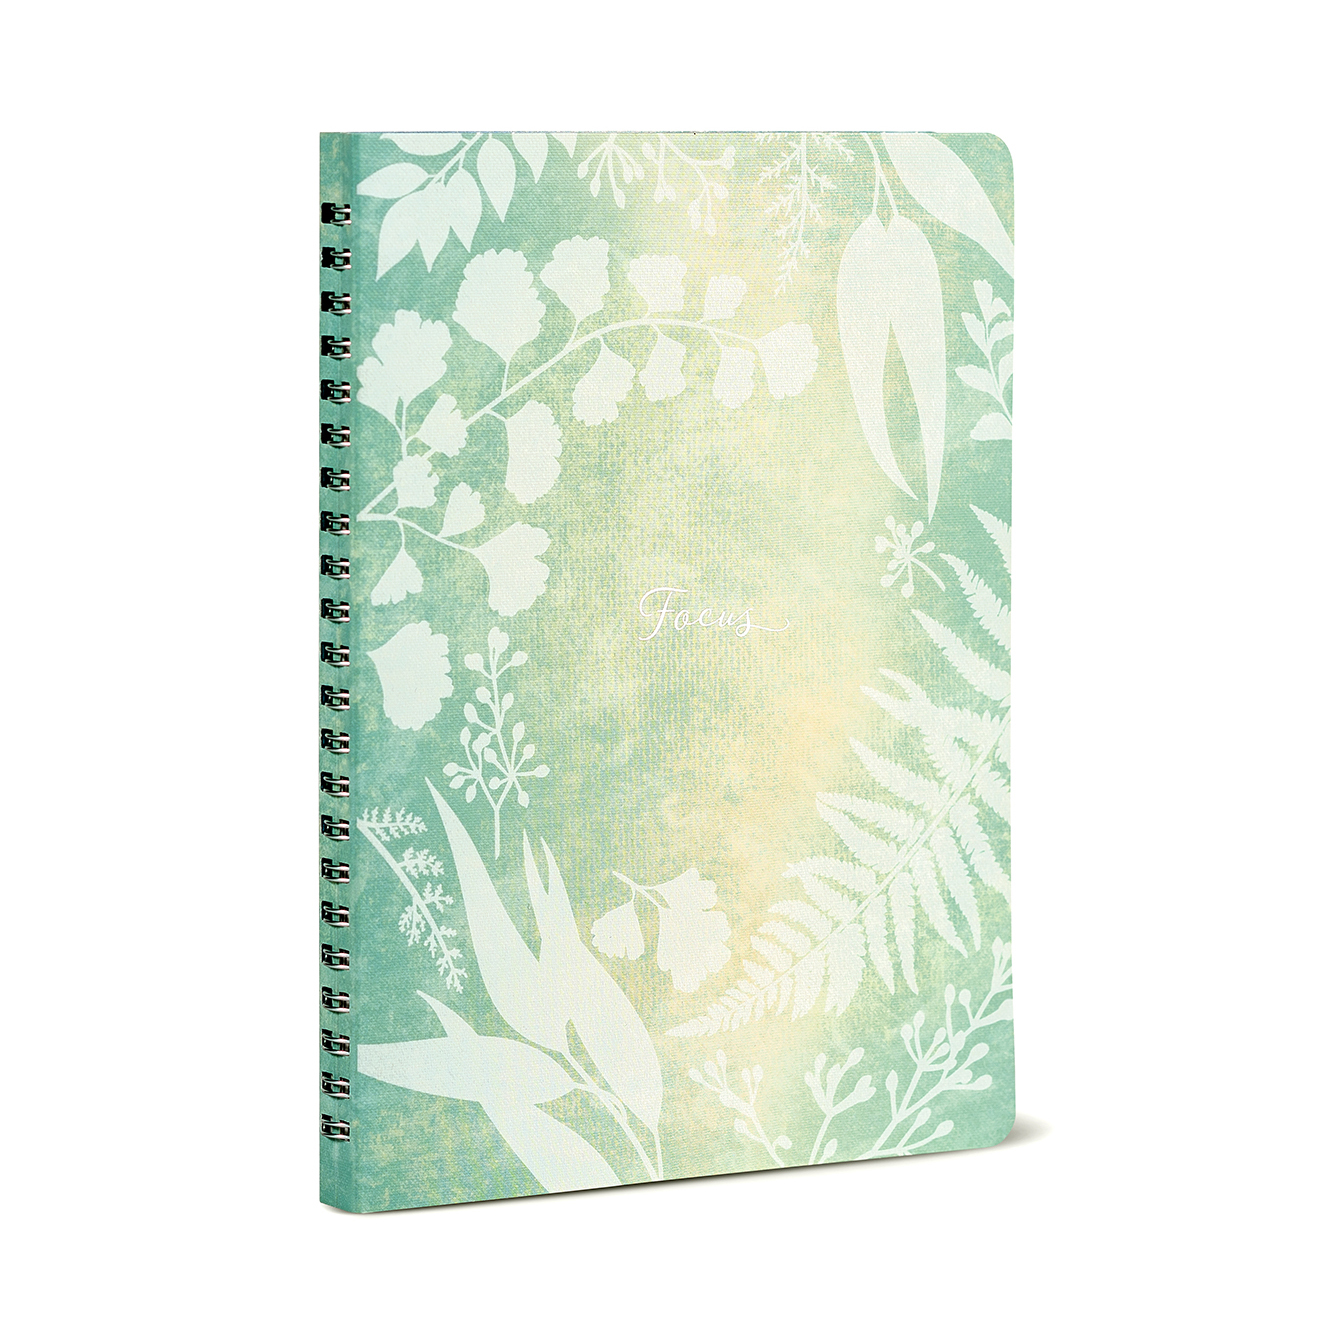 Copy of Copy of High Note Mindfulness Personal Planning Notebook